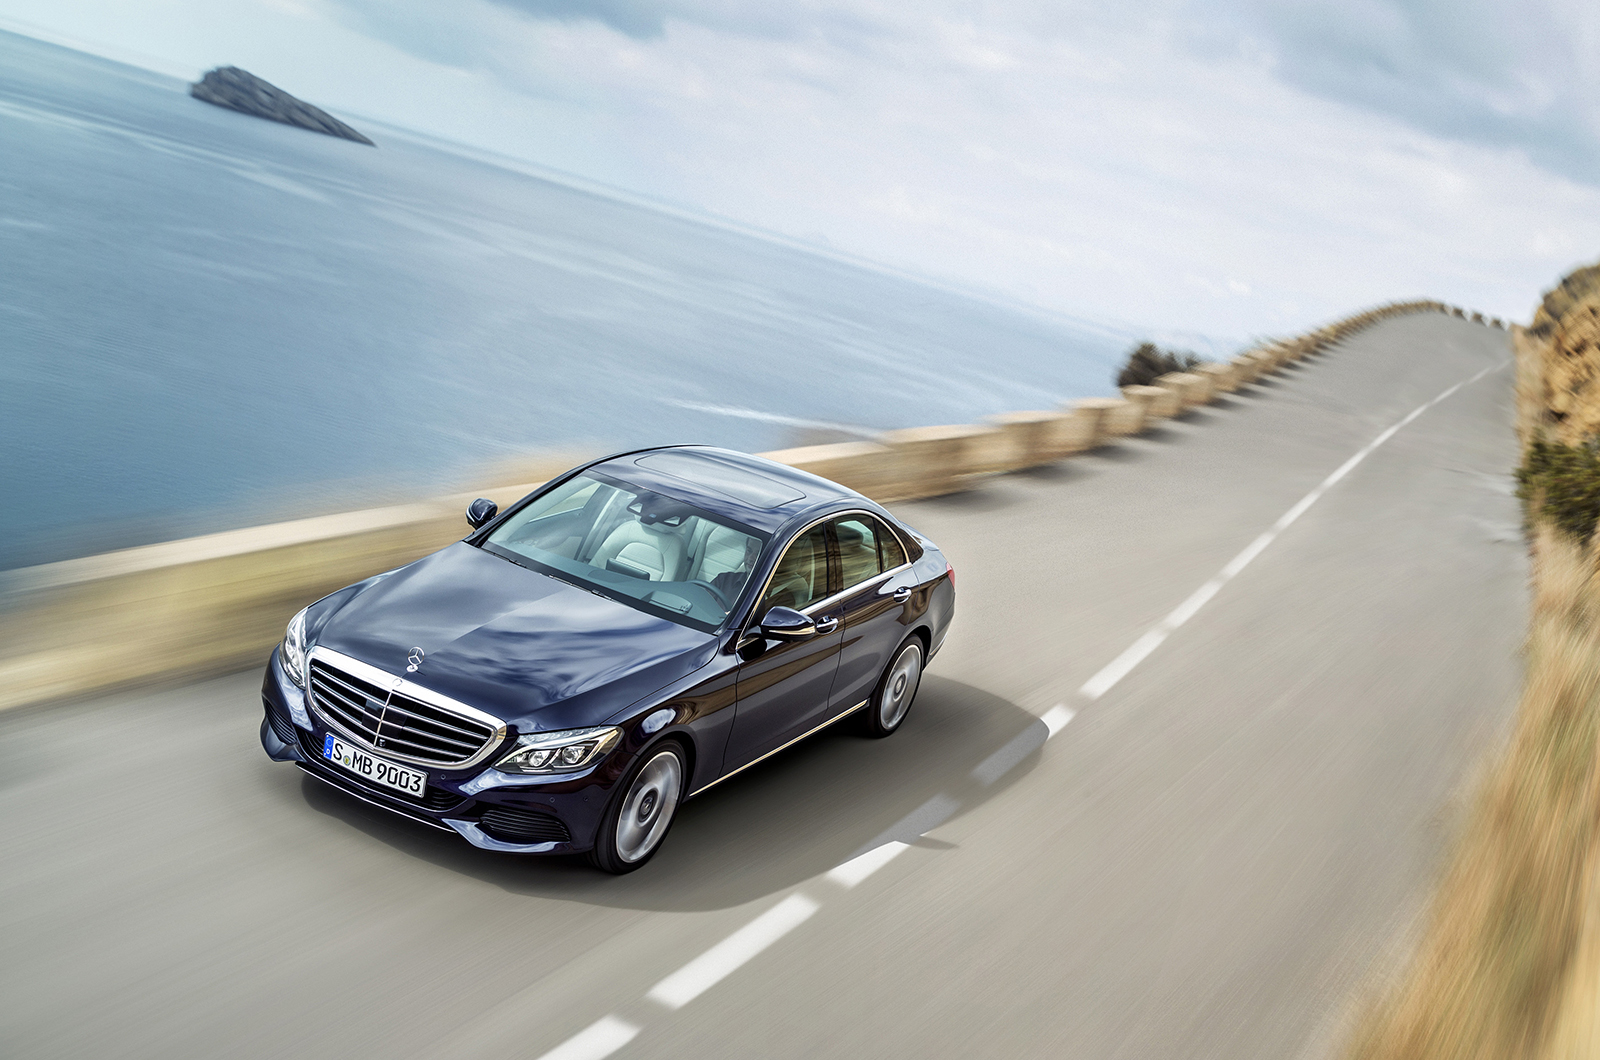 2015 mercedes c class w205 officially revealed mercedes benz forum. Black Bedroom Furniture Sets. Home Design Ideas